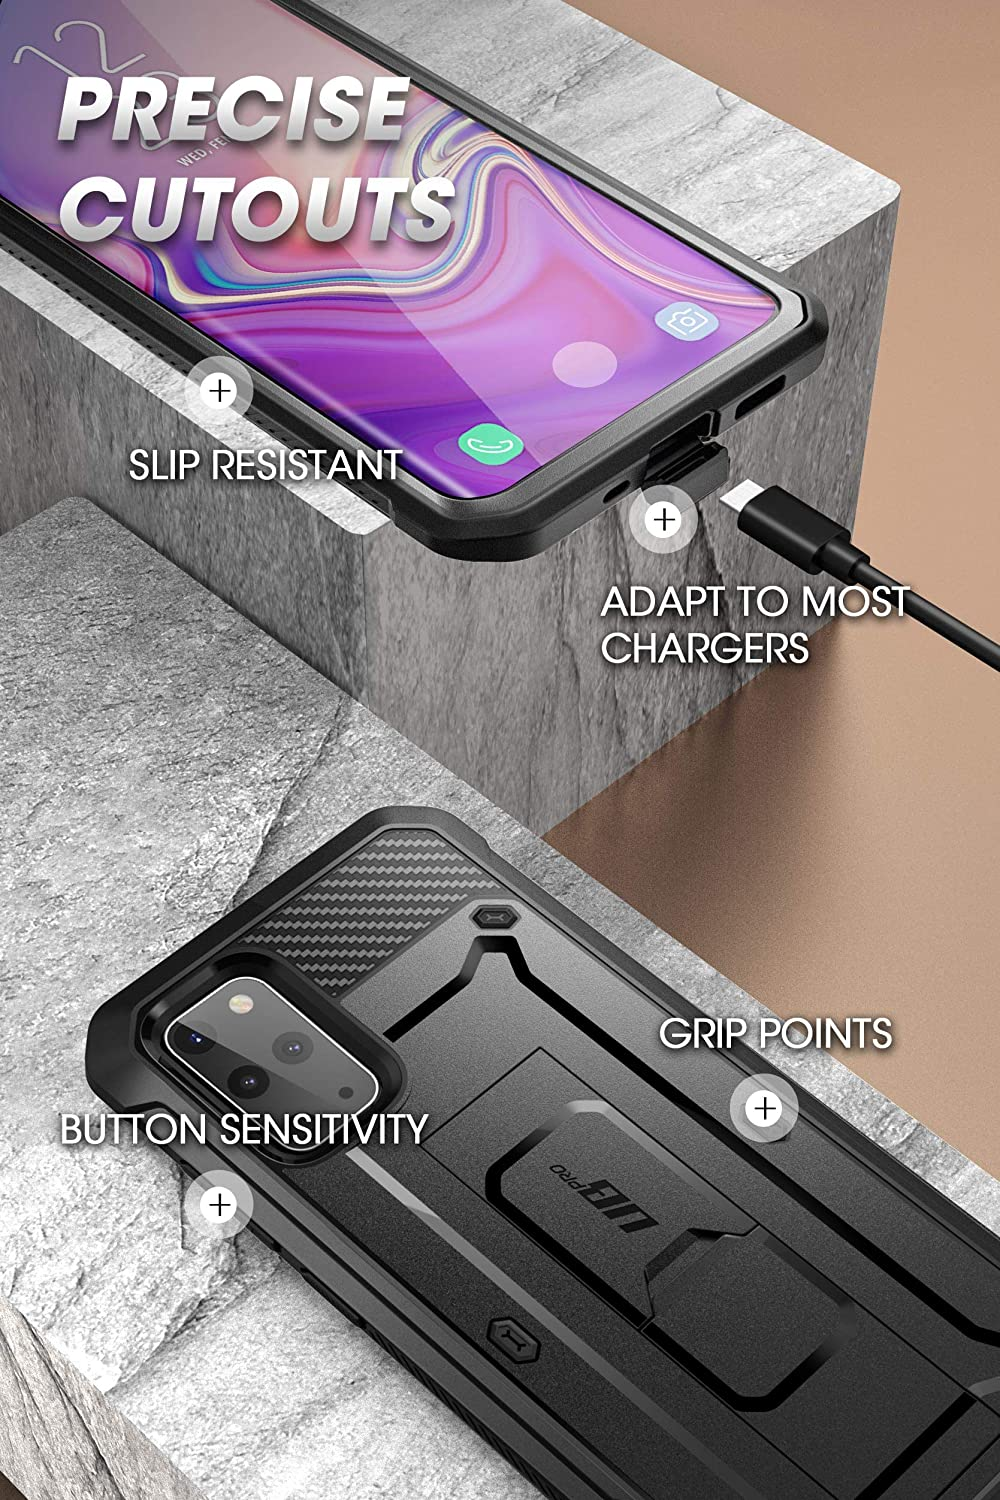 2020 Release Built-in Screen Protector with Full-Body Rugged Holster /& Kickstand for Galaxy S20 Plus Black SUPCASE UB Pro Series Designed for Samsung Galaxy S20 Plus 5G Case